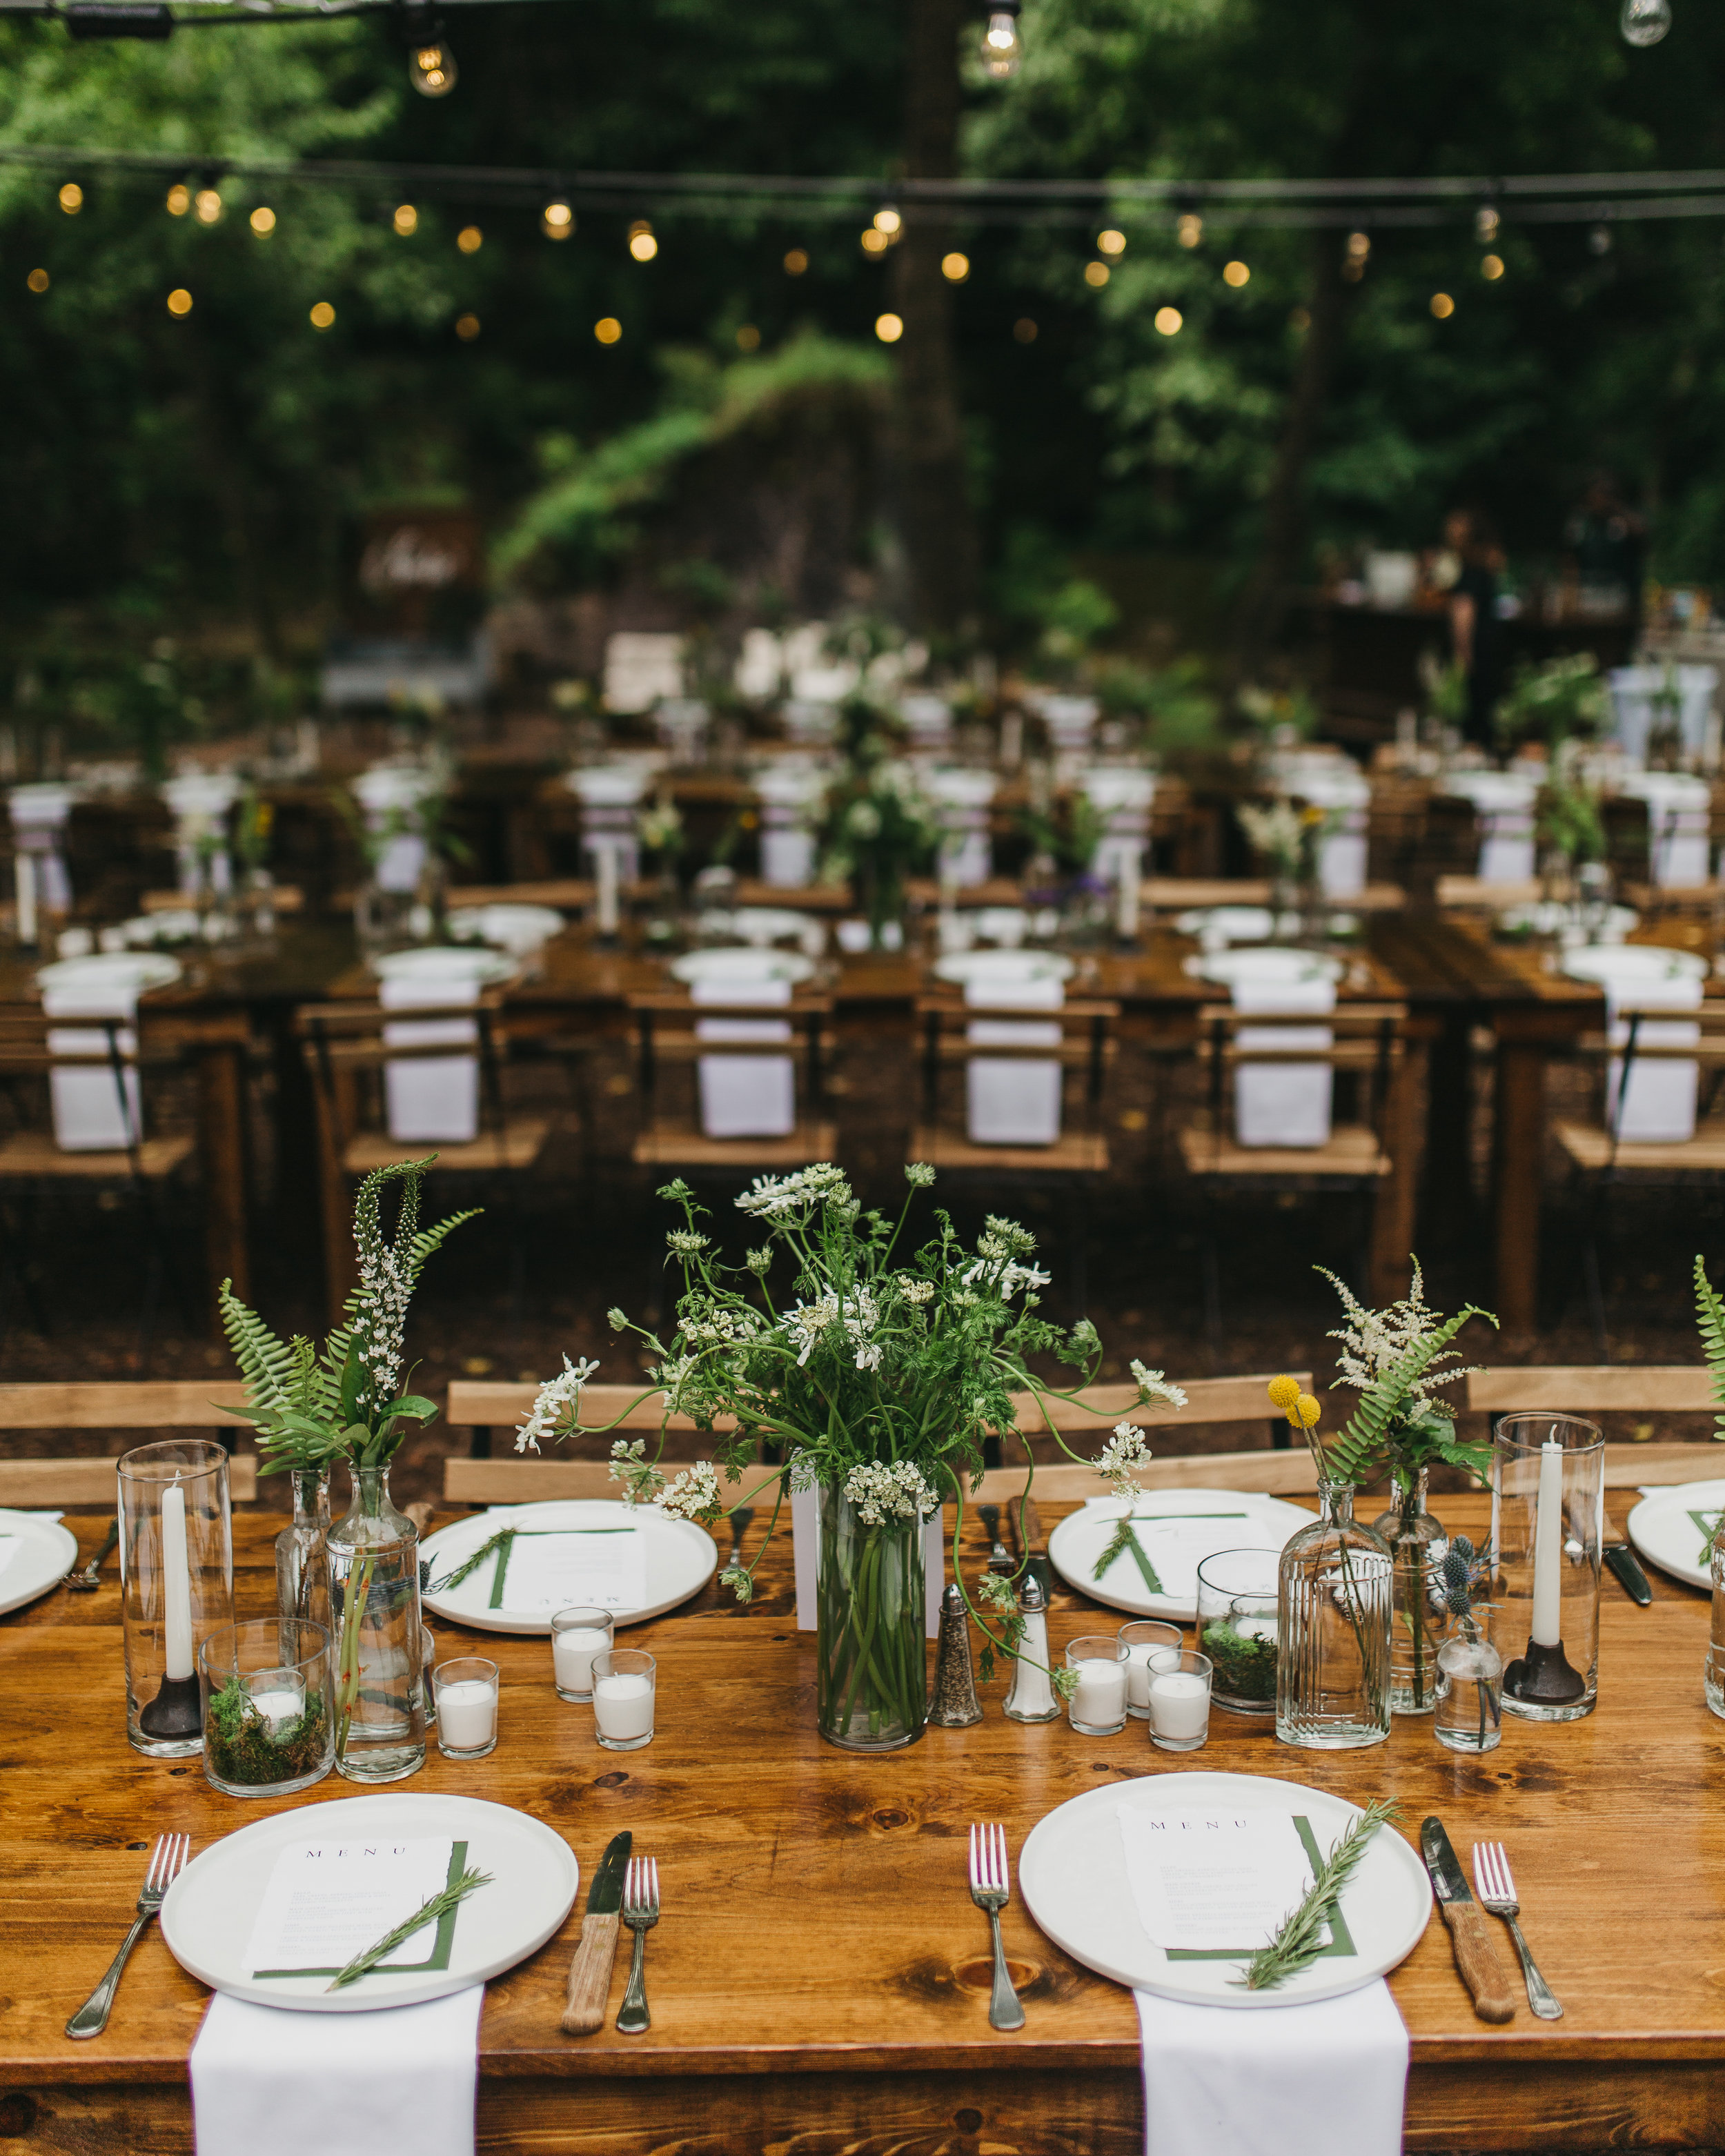 wedding farmhouse tables with greenery and budvases